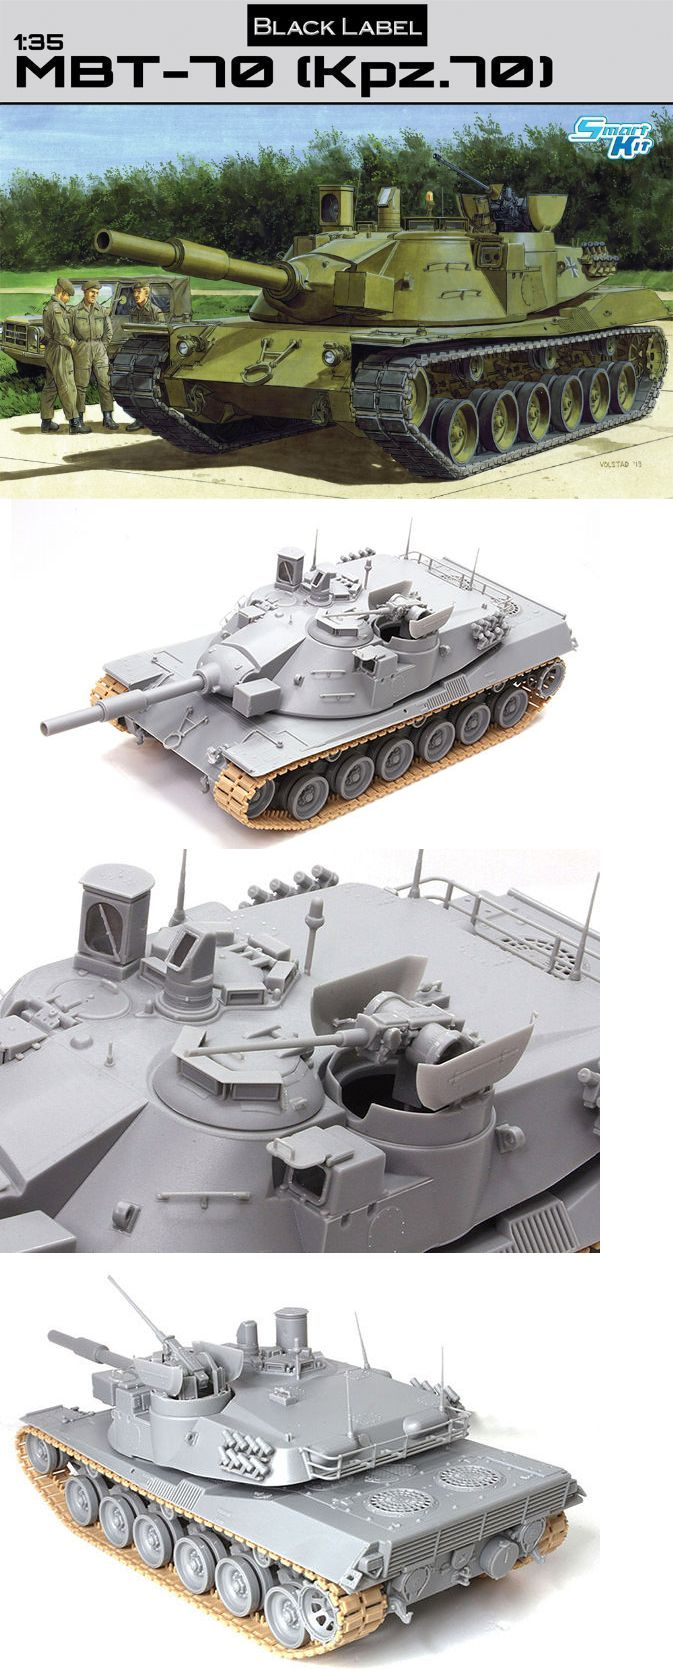 Other Military Models and Kits 1191: Dragon Models 3550 1 35 Mbt-70 (Kpz. 70) -> BUY IT NOW ONLY: $48.5 on eBay!